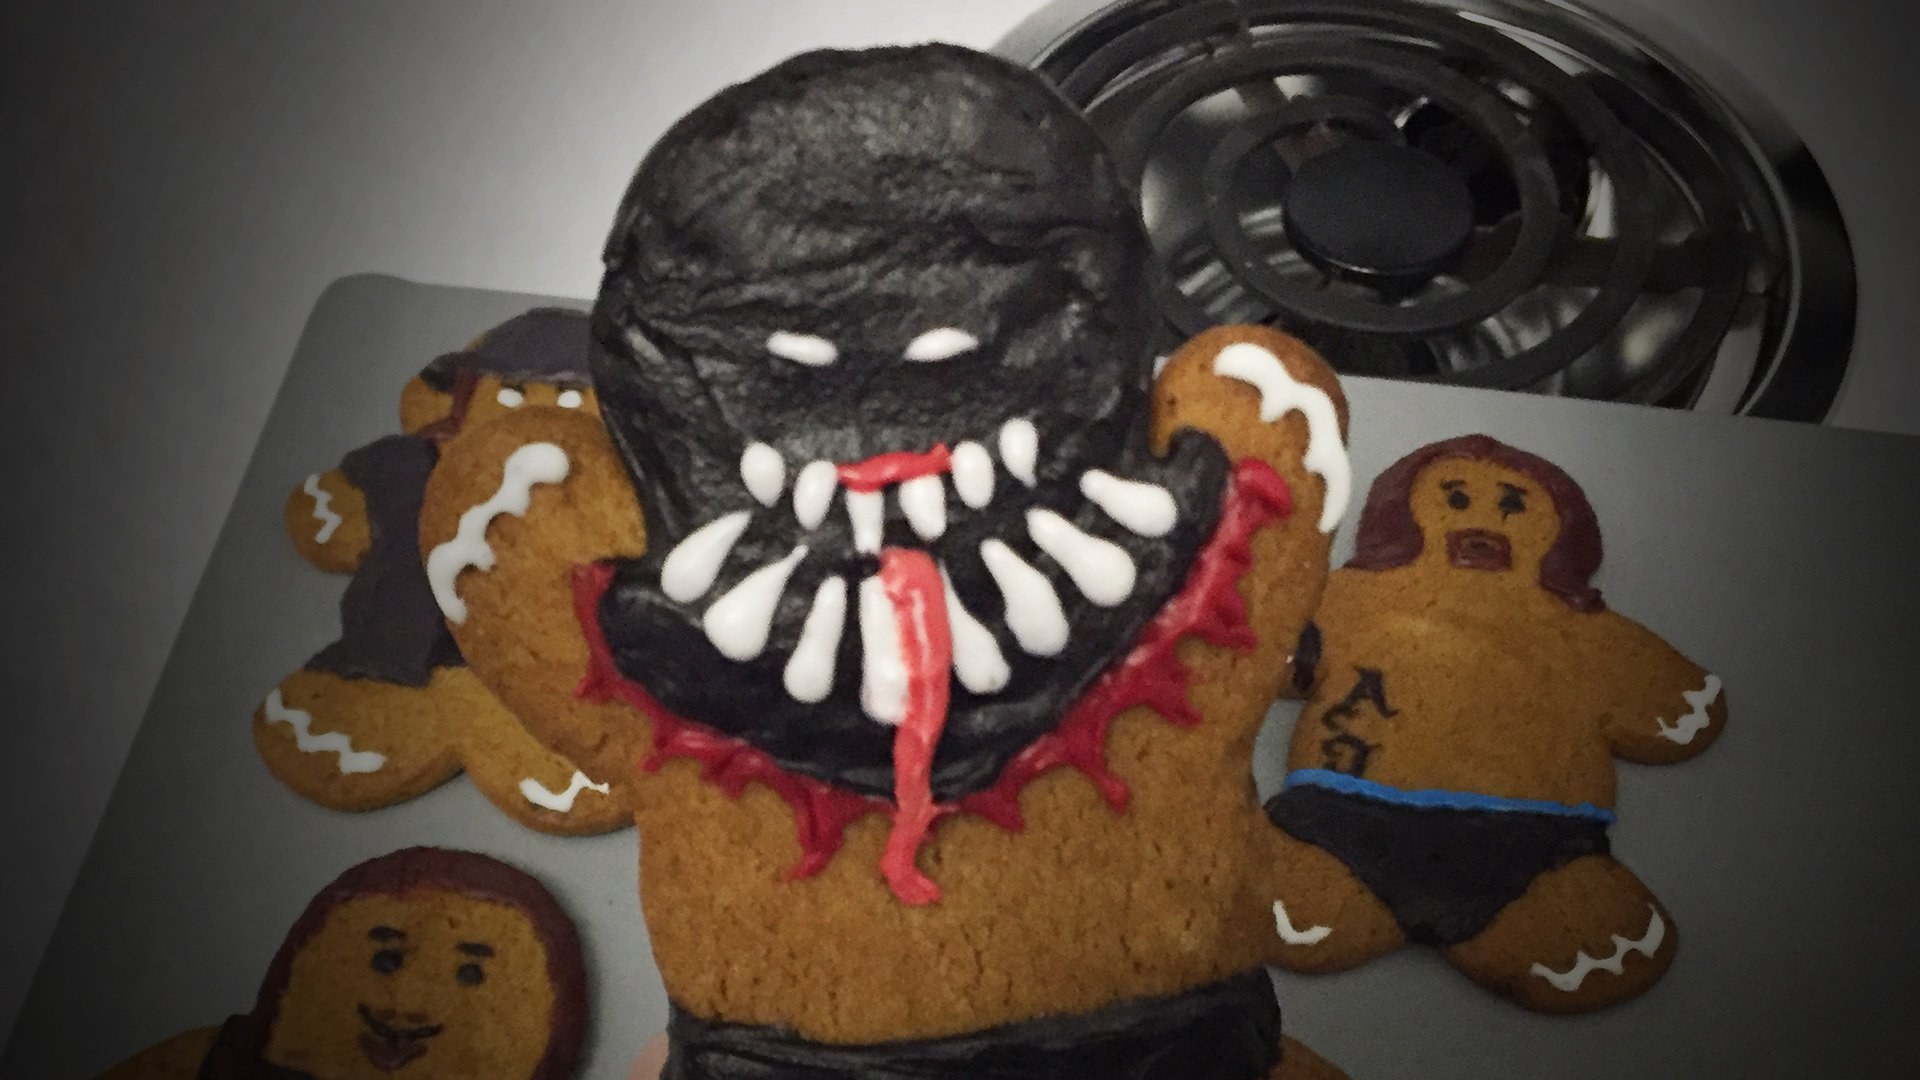 084dd75c3e4b How to create your own WWE Superstar gingerbread men